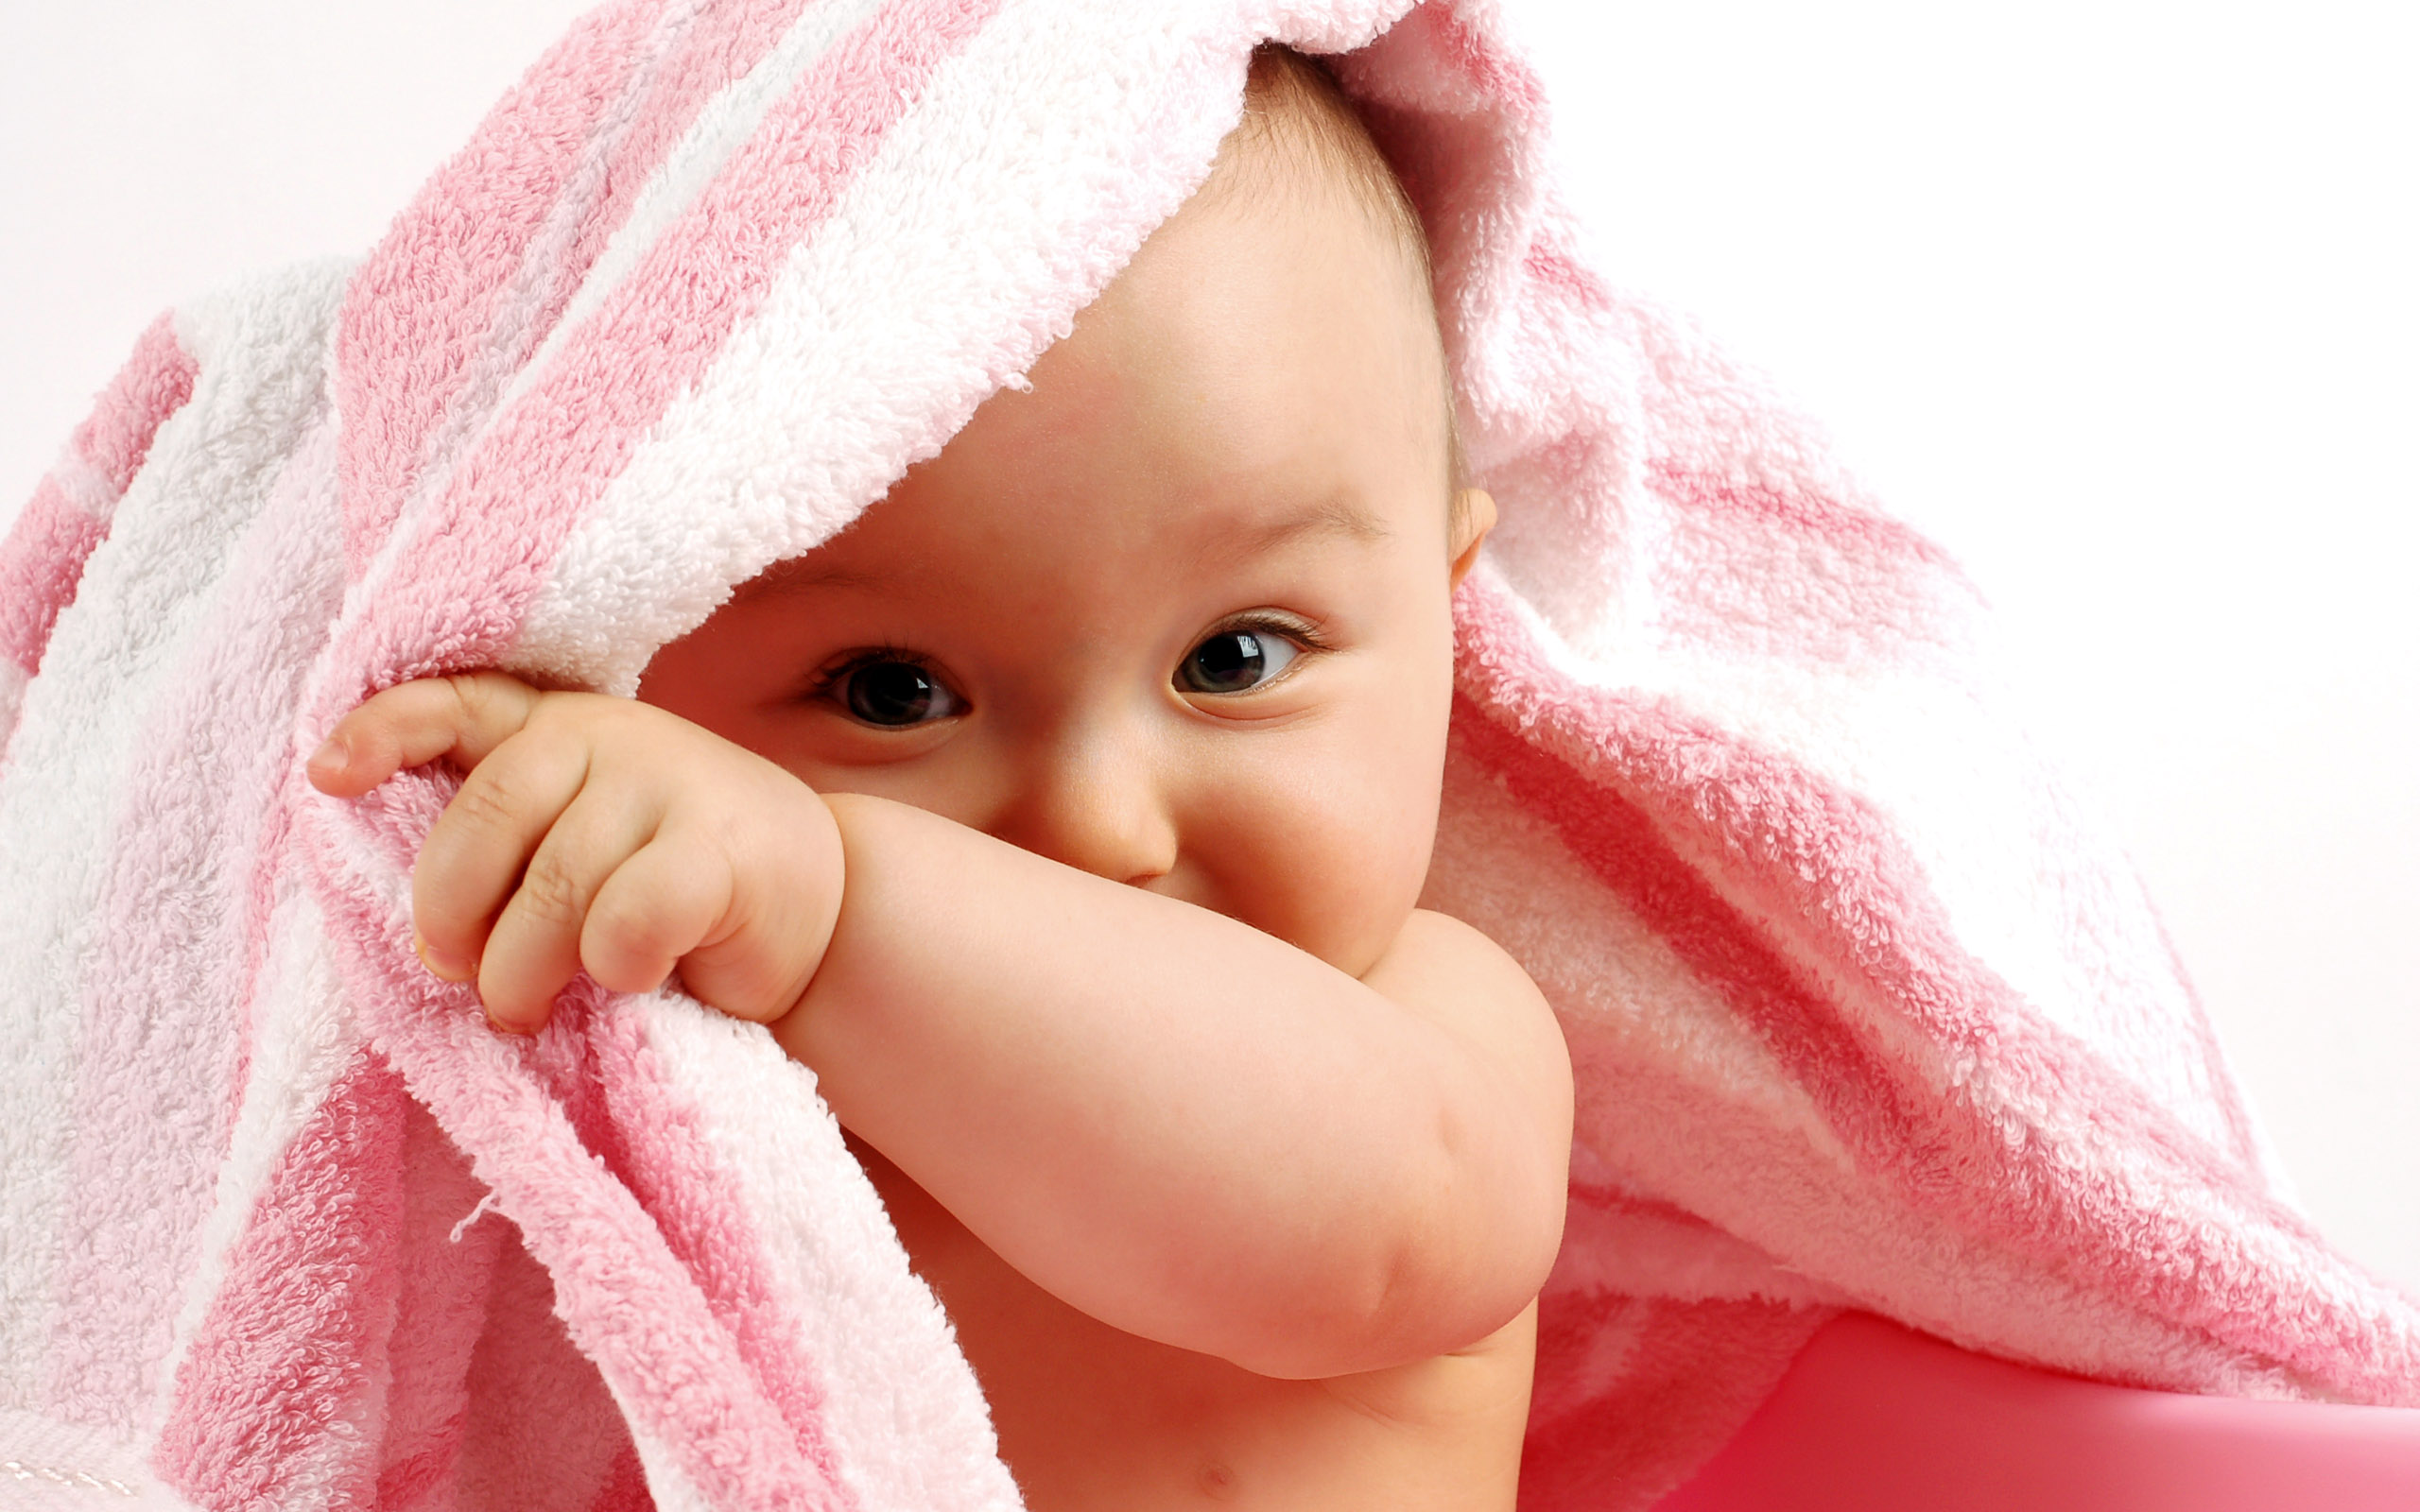 cute Baby Boy 2 Facebook covers Wallpapers HD